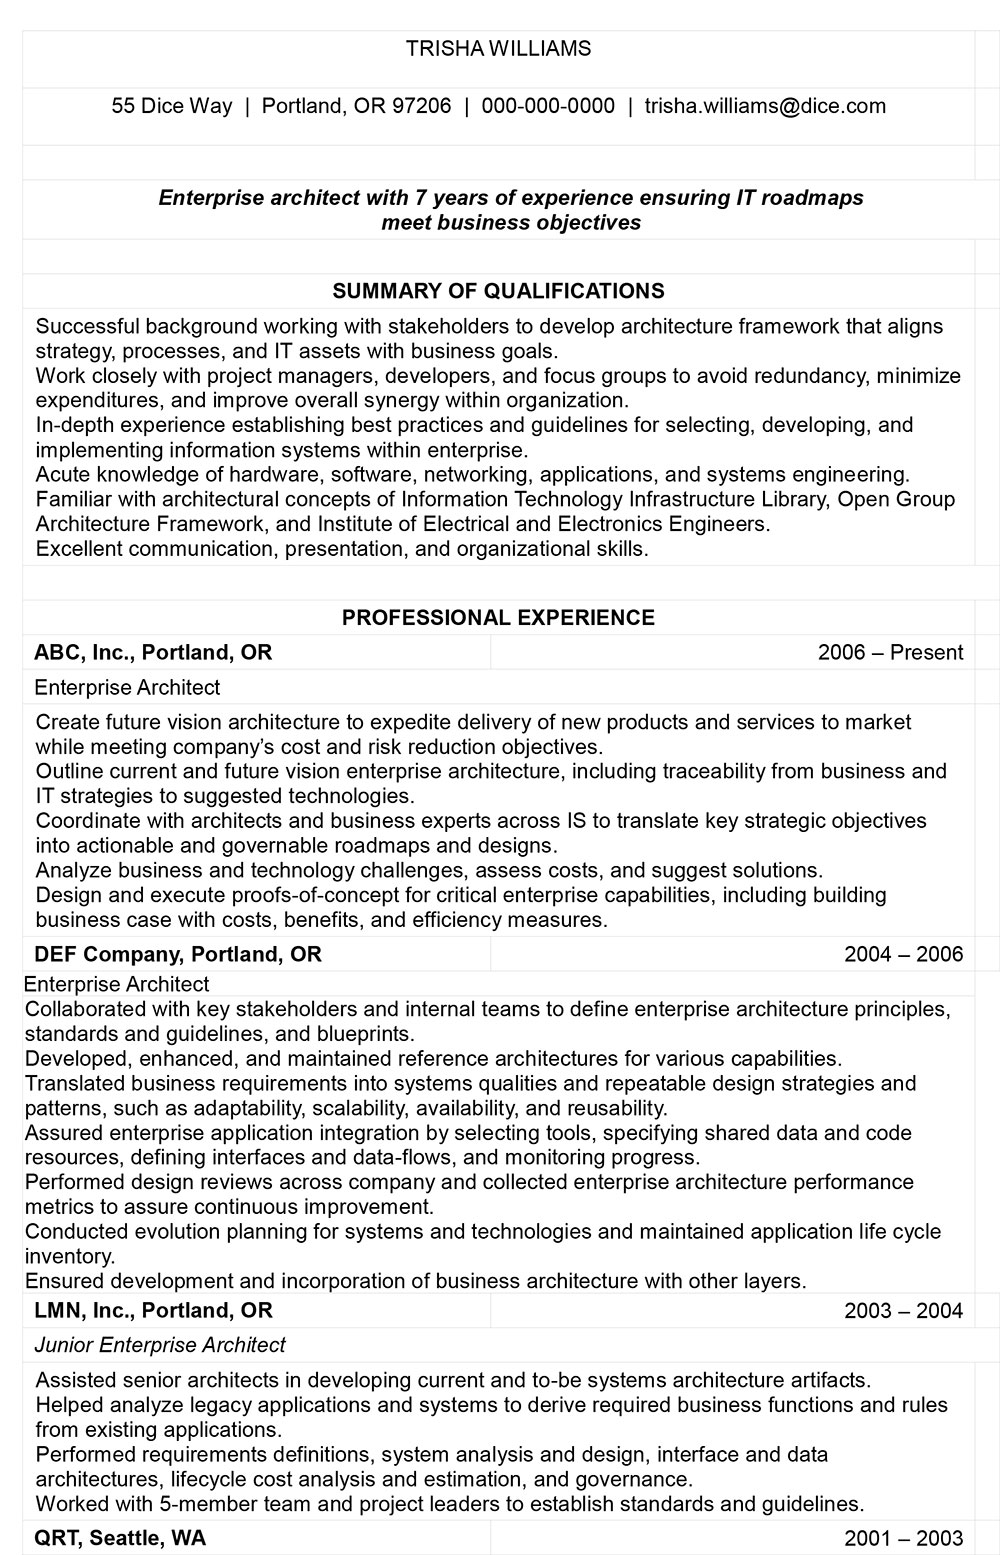 the architecture resume that gets you hired templates included enterprise architect hvac Resume Enterprise Architect Resume